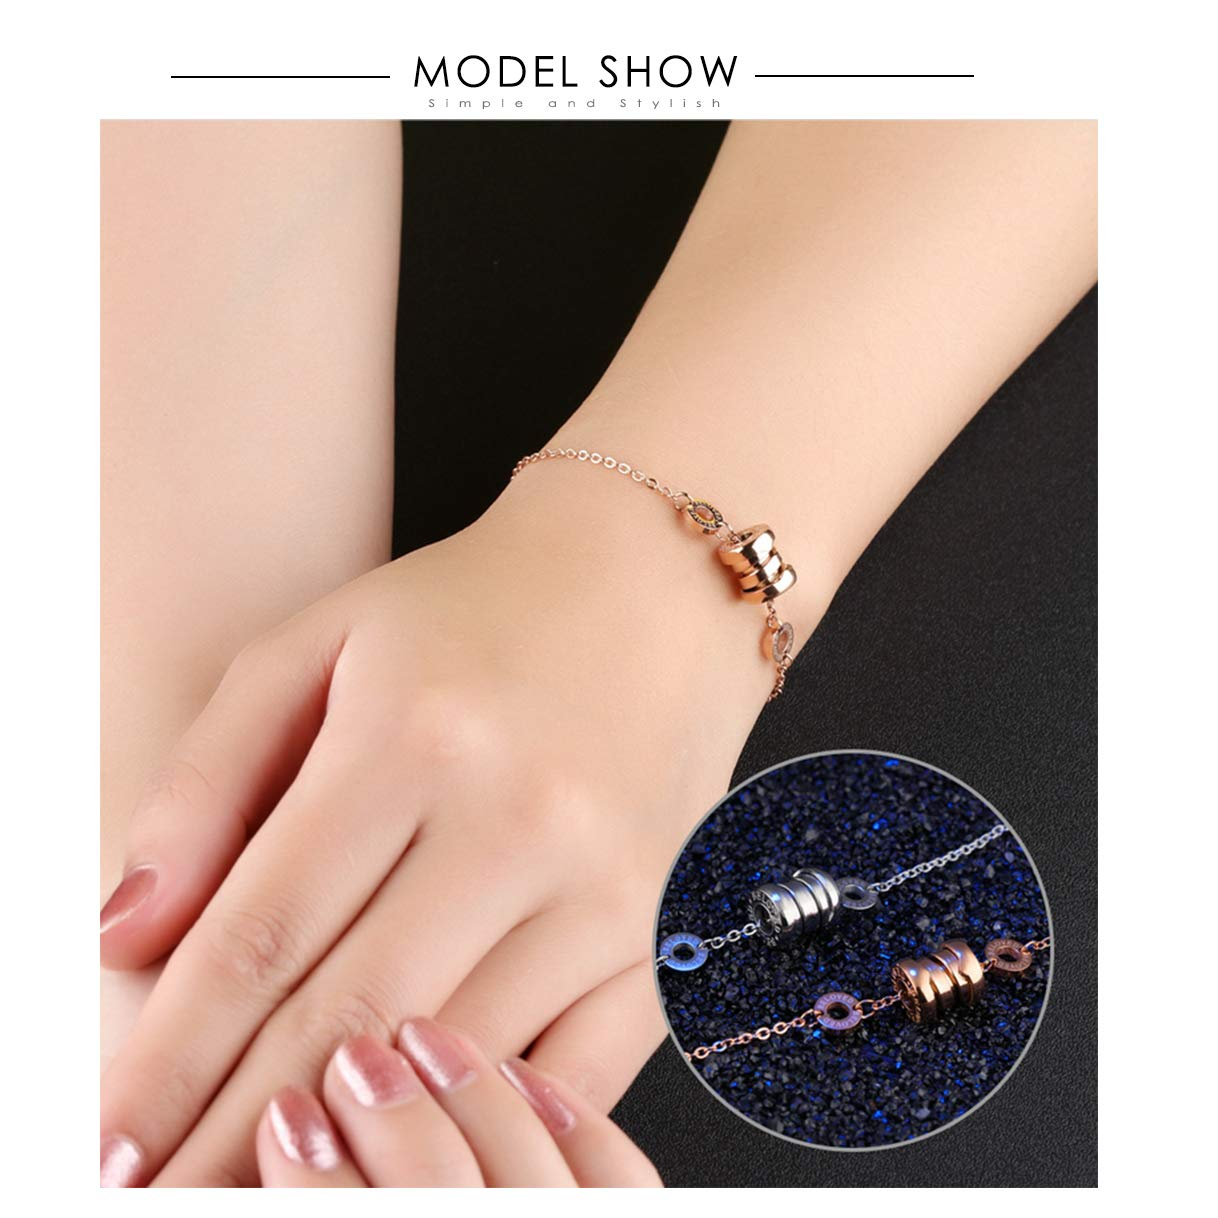 CHARMFAME Rose Gold Plated Stainless Steel Beloved Engraved Circle Link Bracelet Fashion Jewelry for Women /& Girls